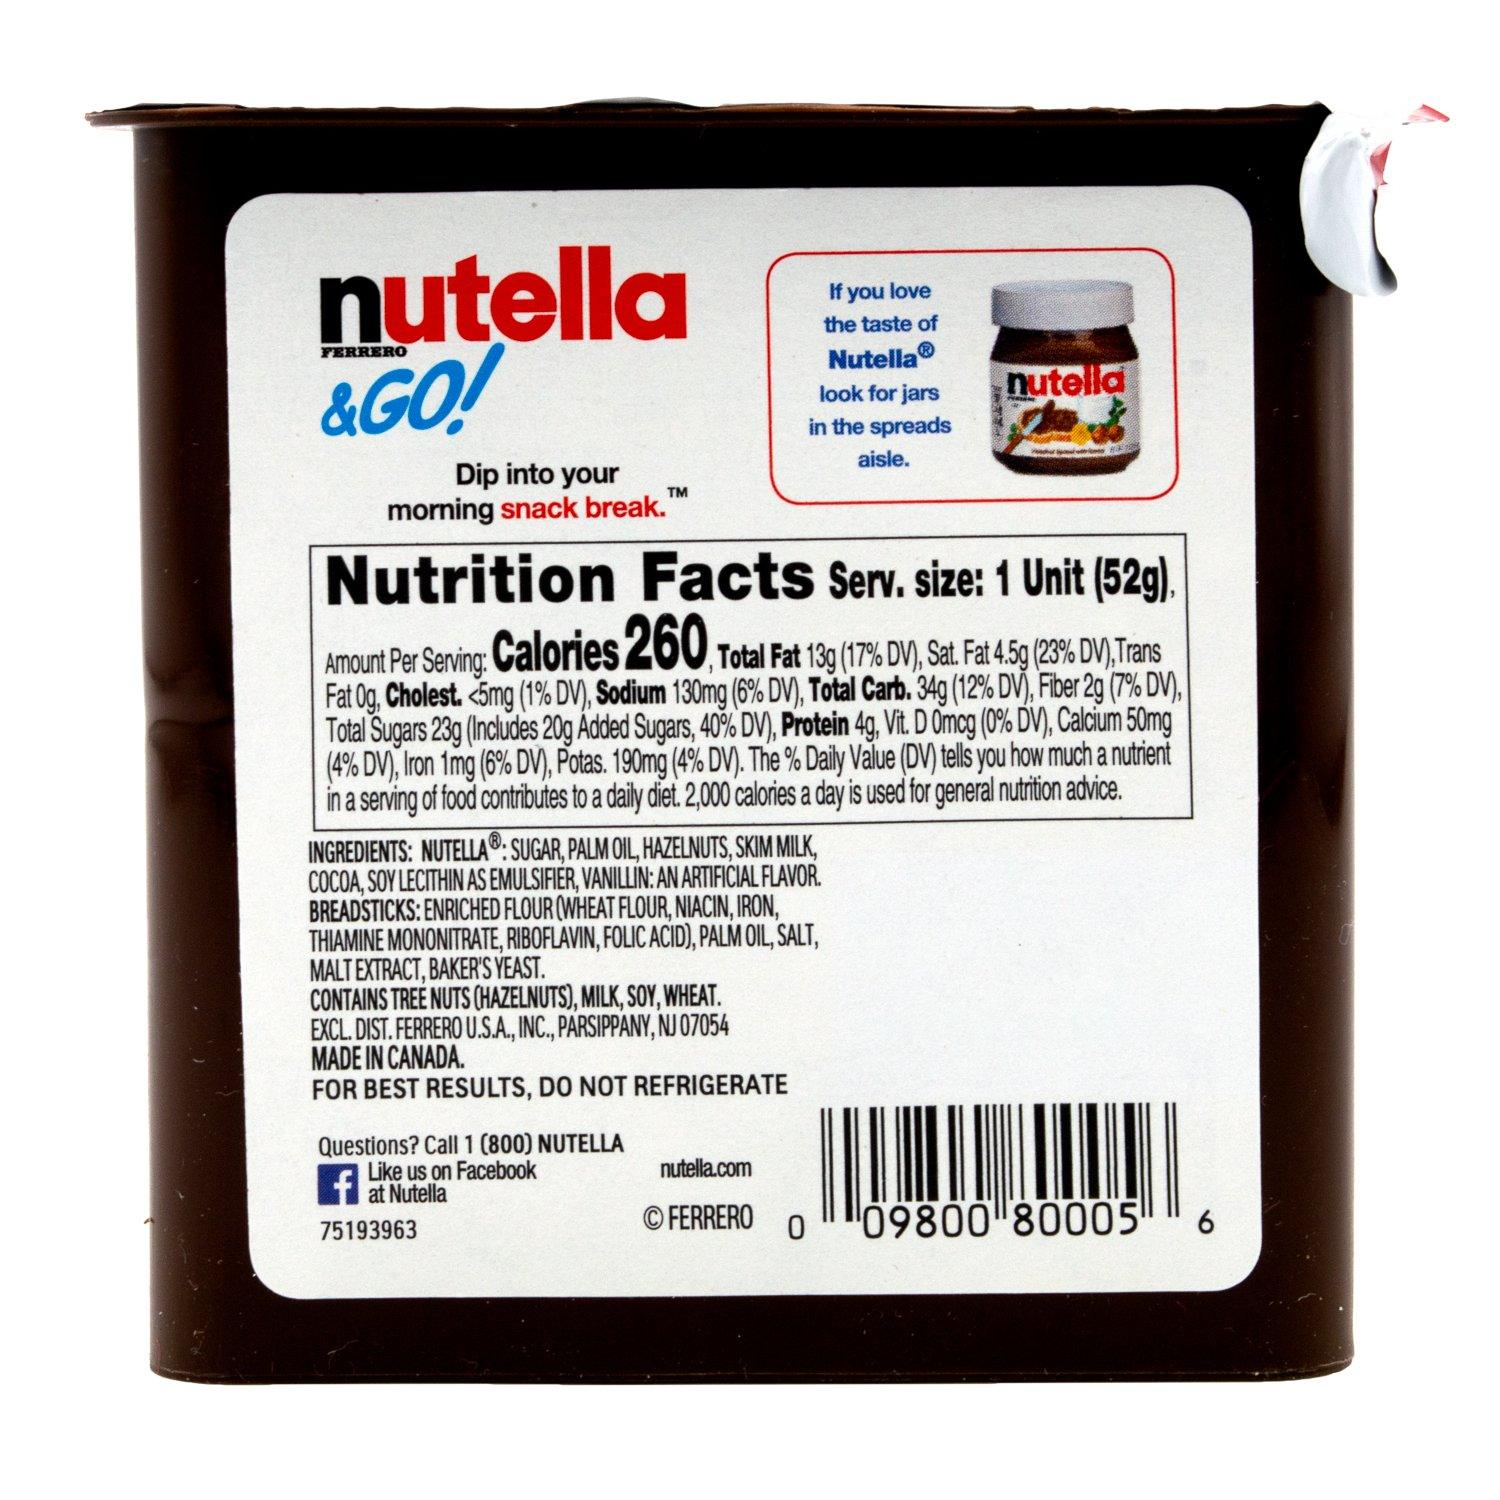 Nutella & Go Snack Pack Nutella